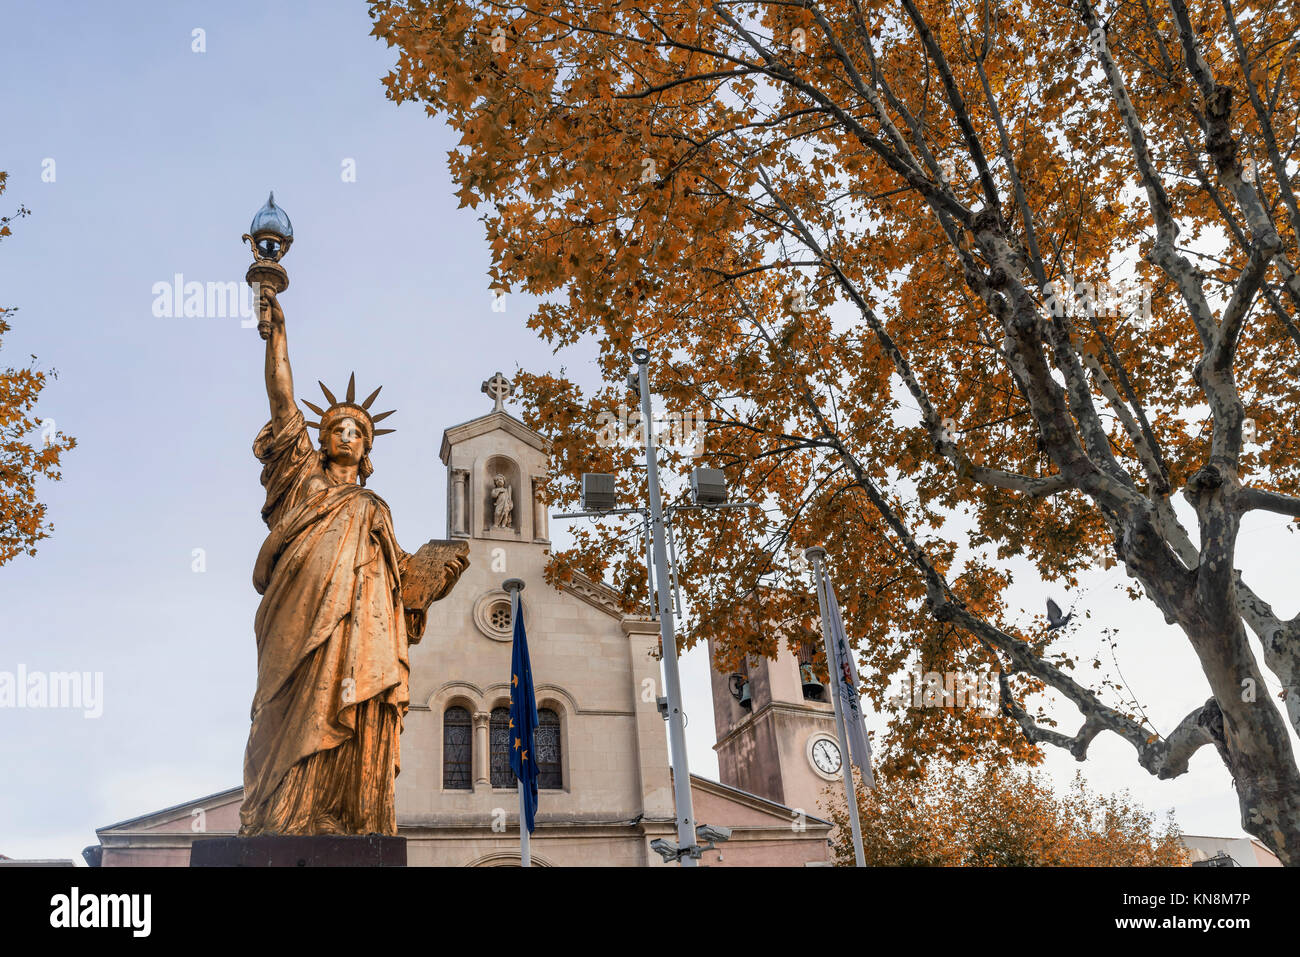 Golden Replica of the Statue of Liberty by Frédéric Bartholdi at Saint-Cyr-sur-Mer Var Département - Stock Image